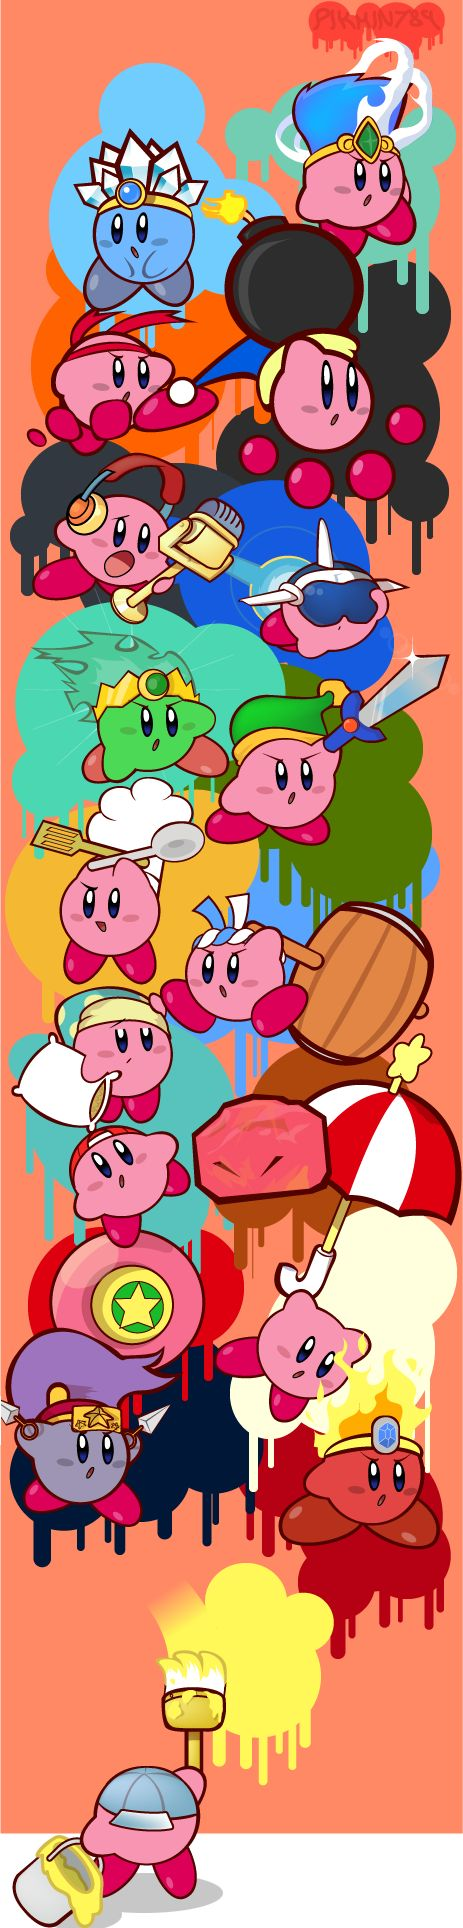 All the Kirby abilities--being painted by Paint Kirby!